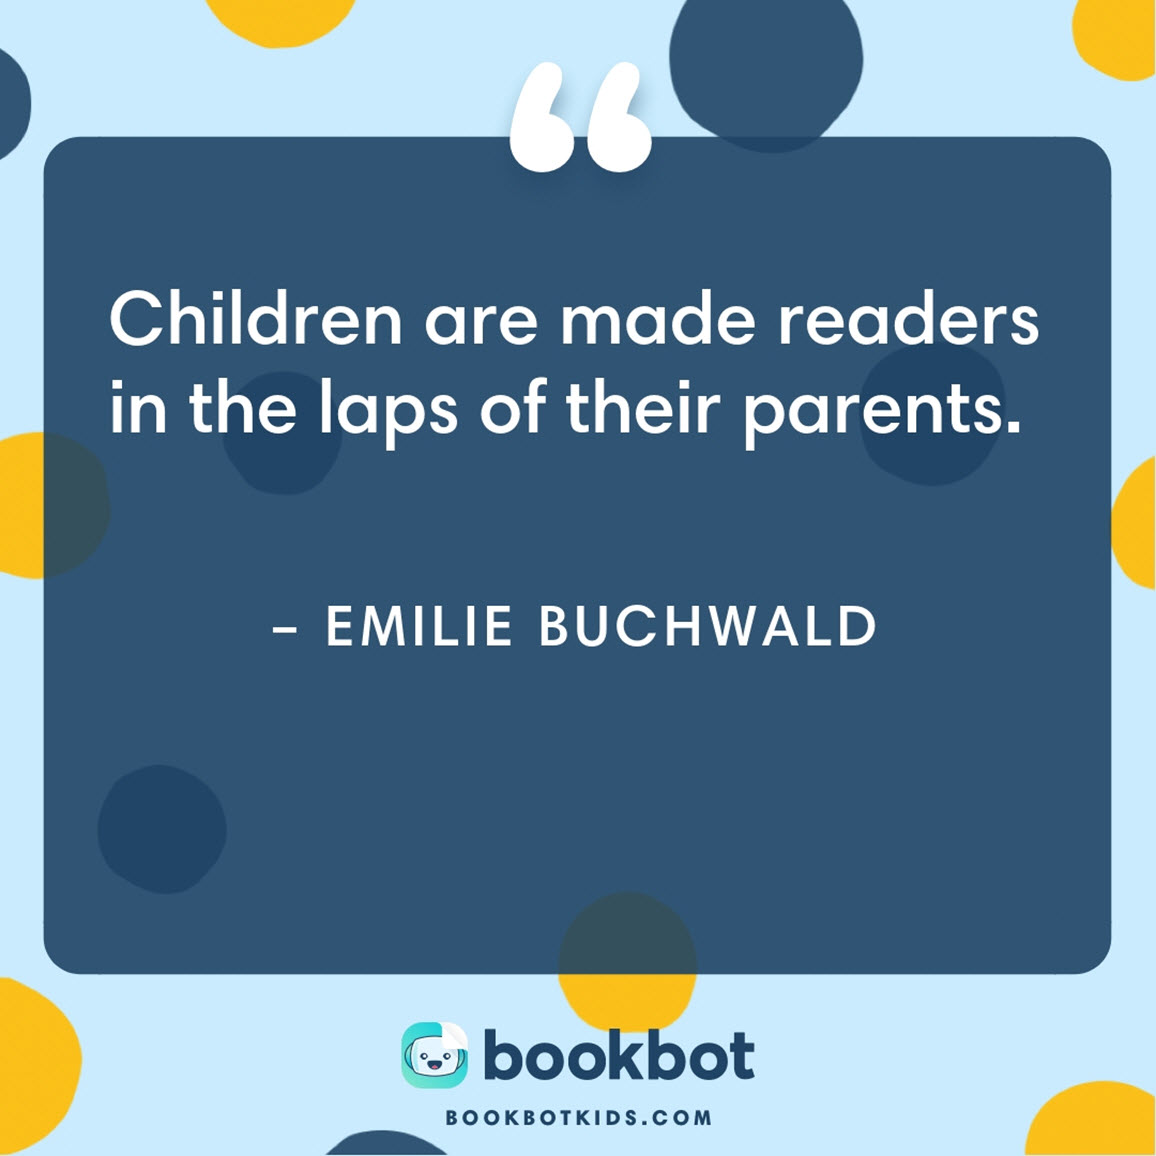 Children are made readers in the laps of their parents. – Emilie Buchwald